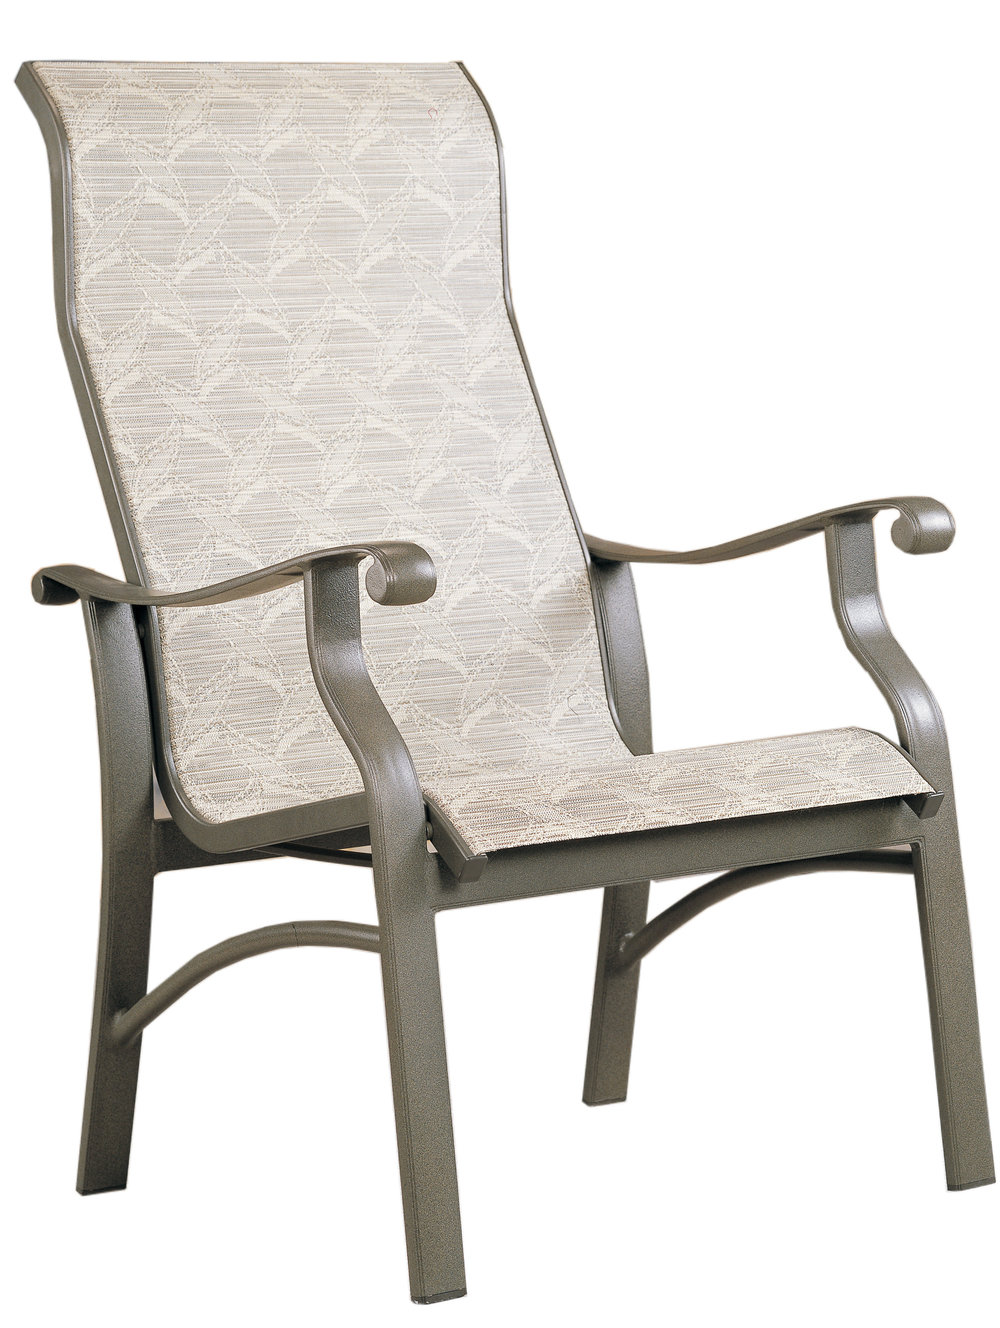 "970521H Mandalay HB Dining Chair   25.2"" x 29.5"" x 42"""